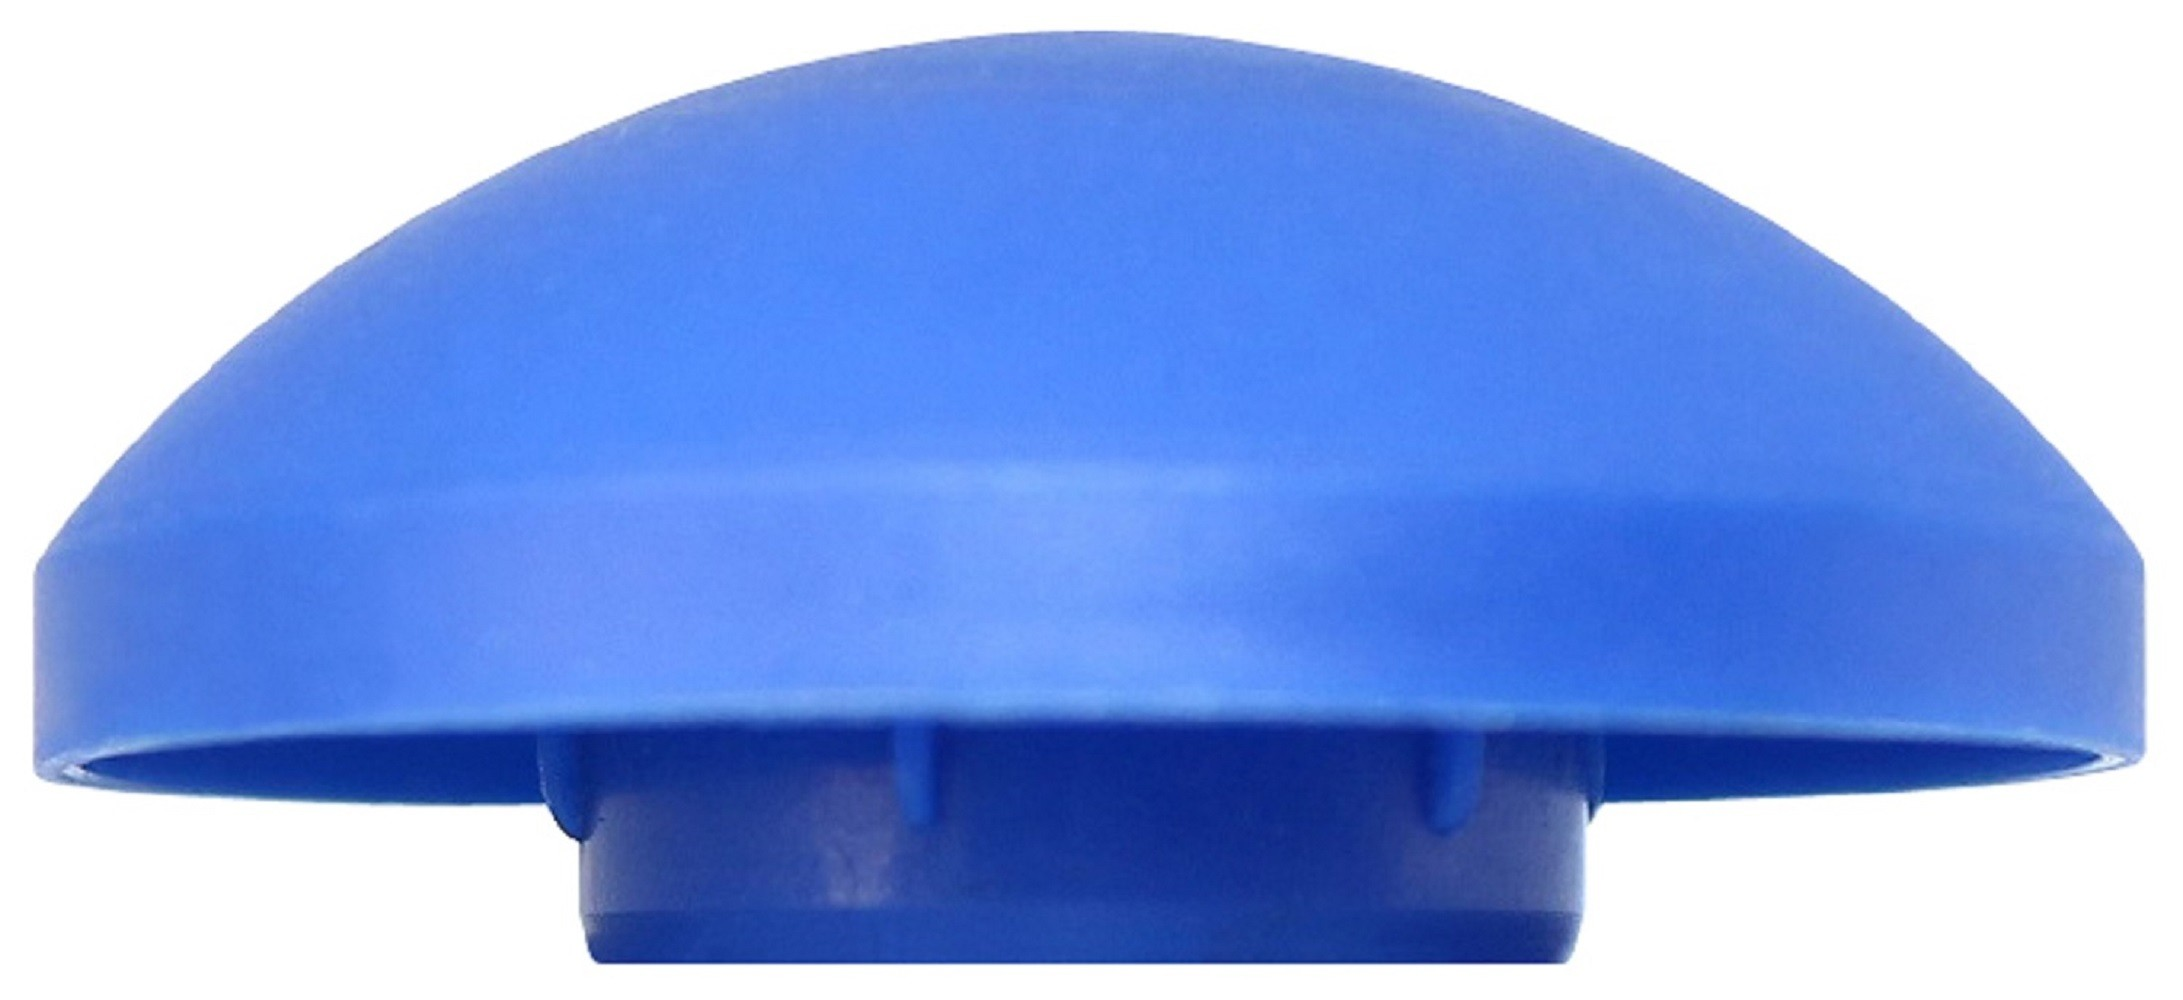 "Trampoline Pole Cover Fits for 1"" Diameter Pole - Set of 8"